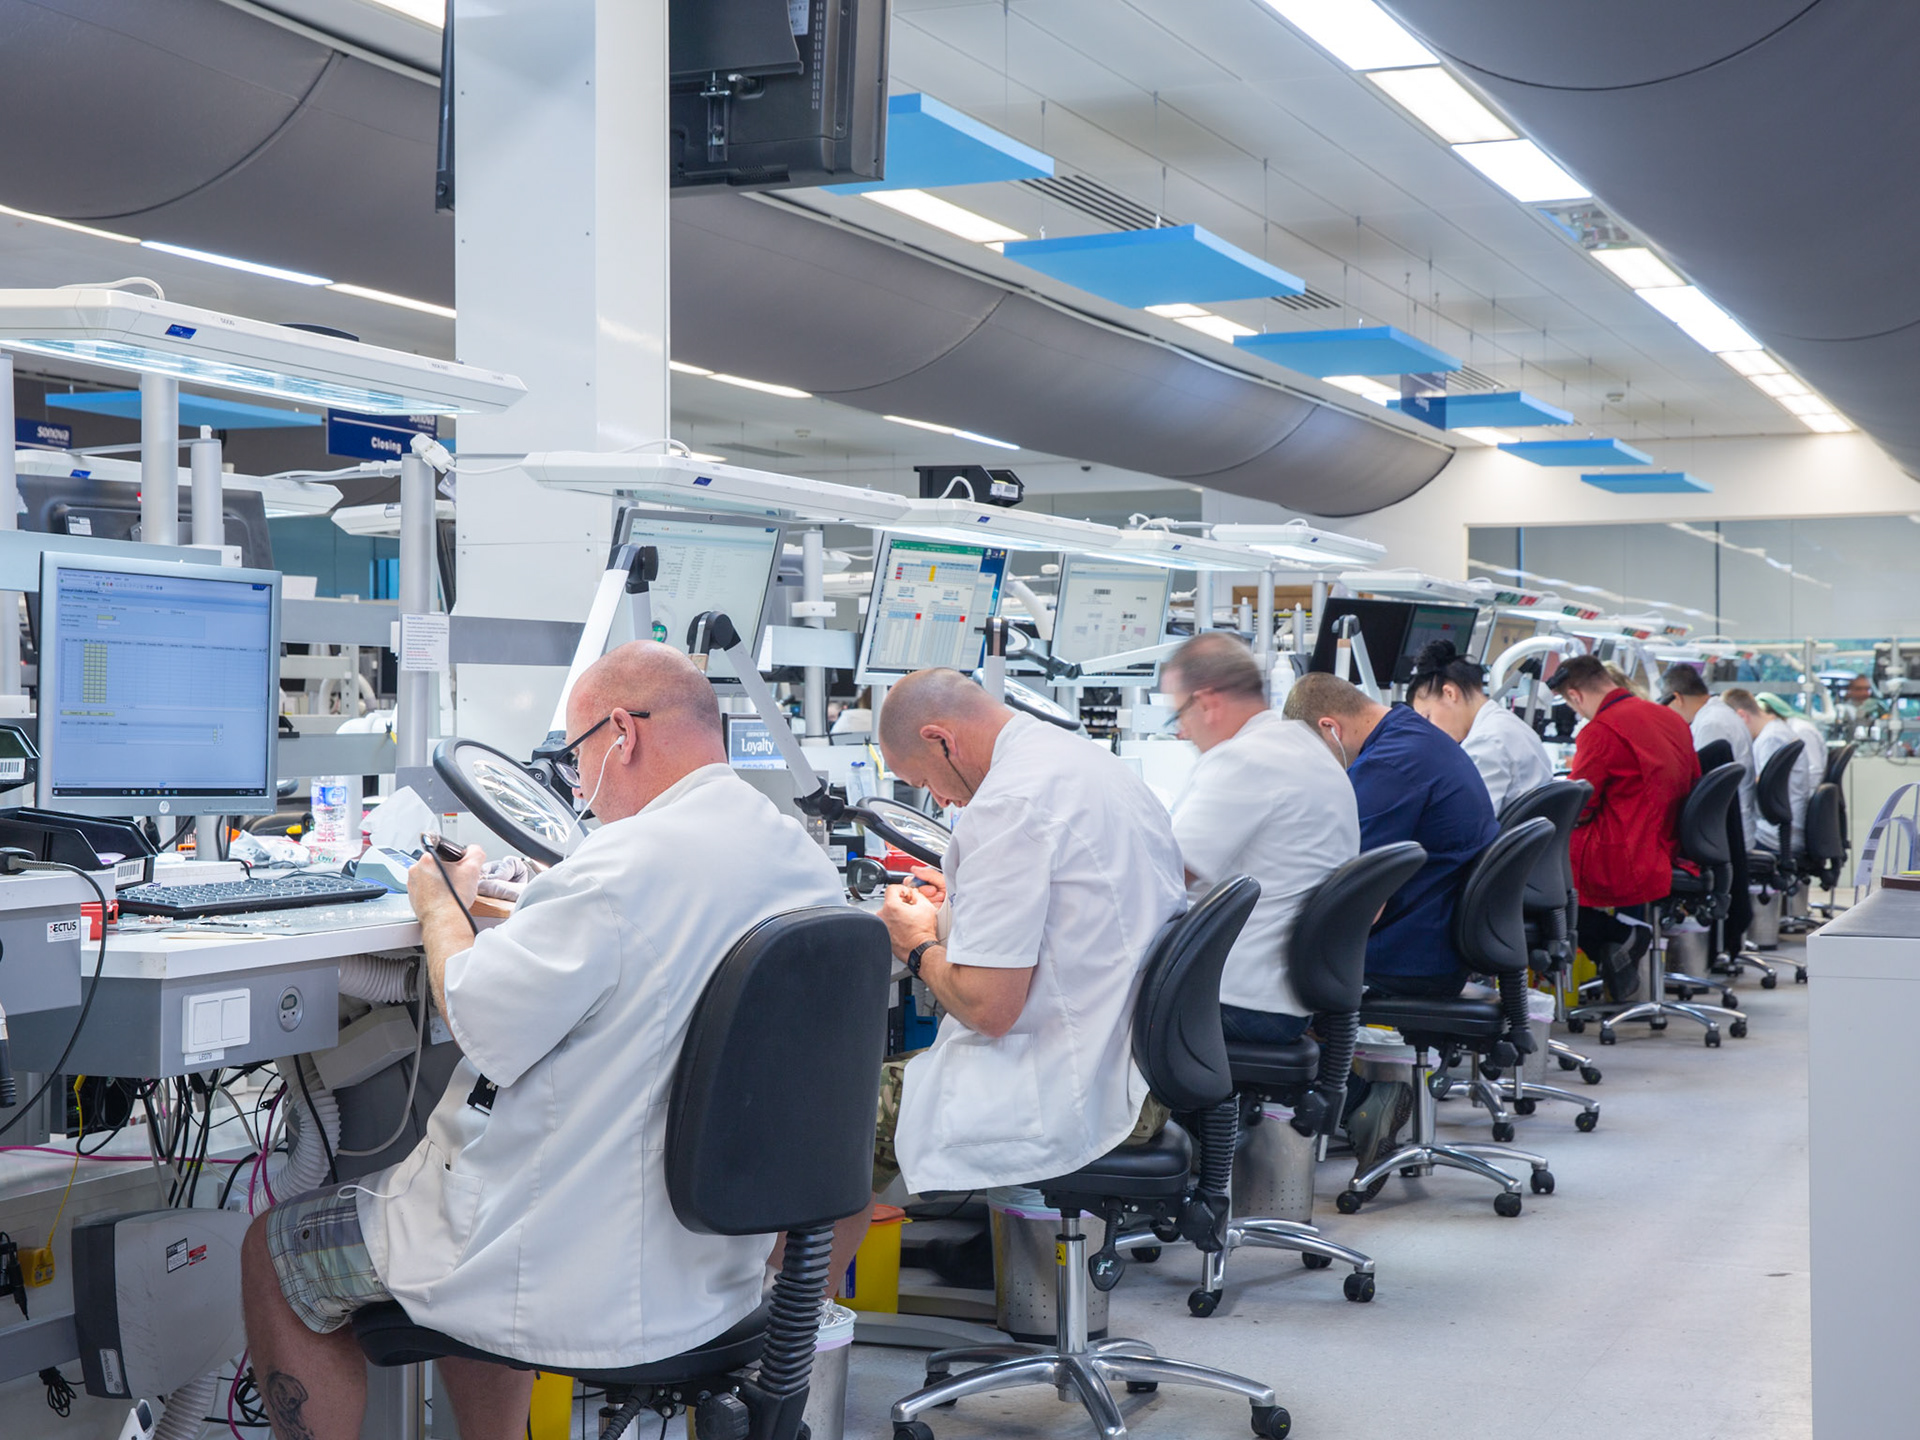 Commercial Photography Hearing Aid Production line in laboratory